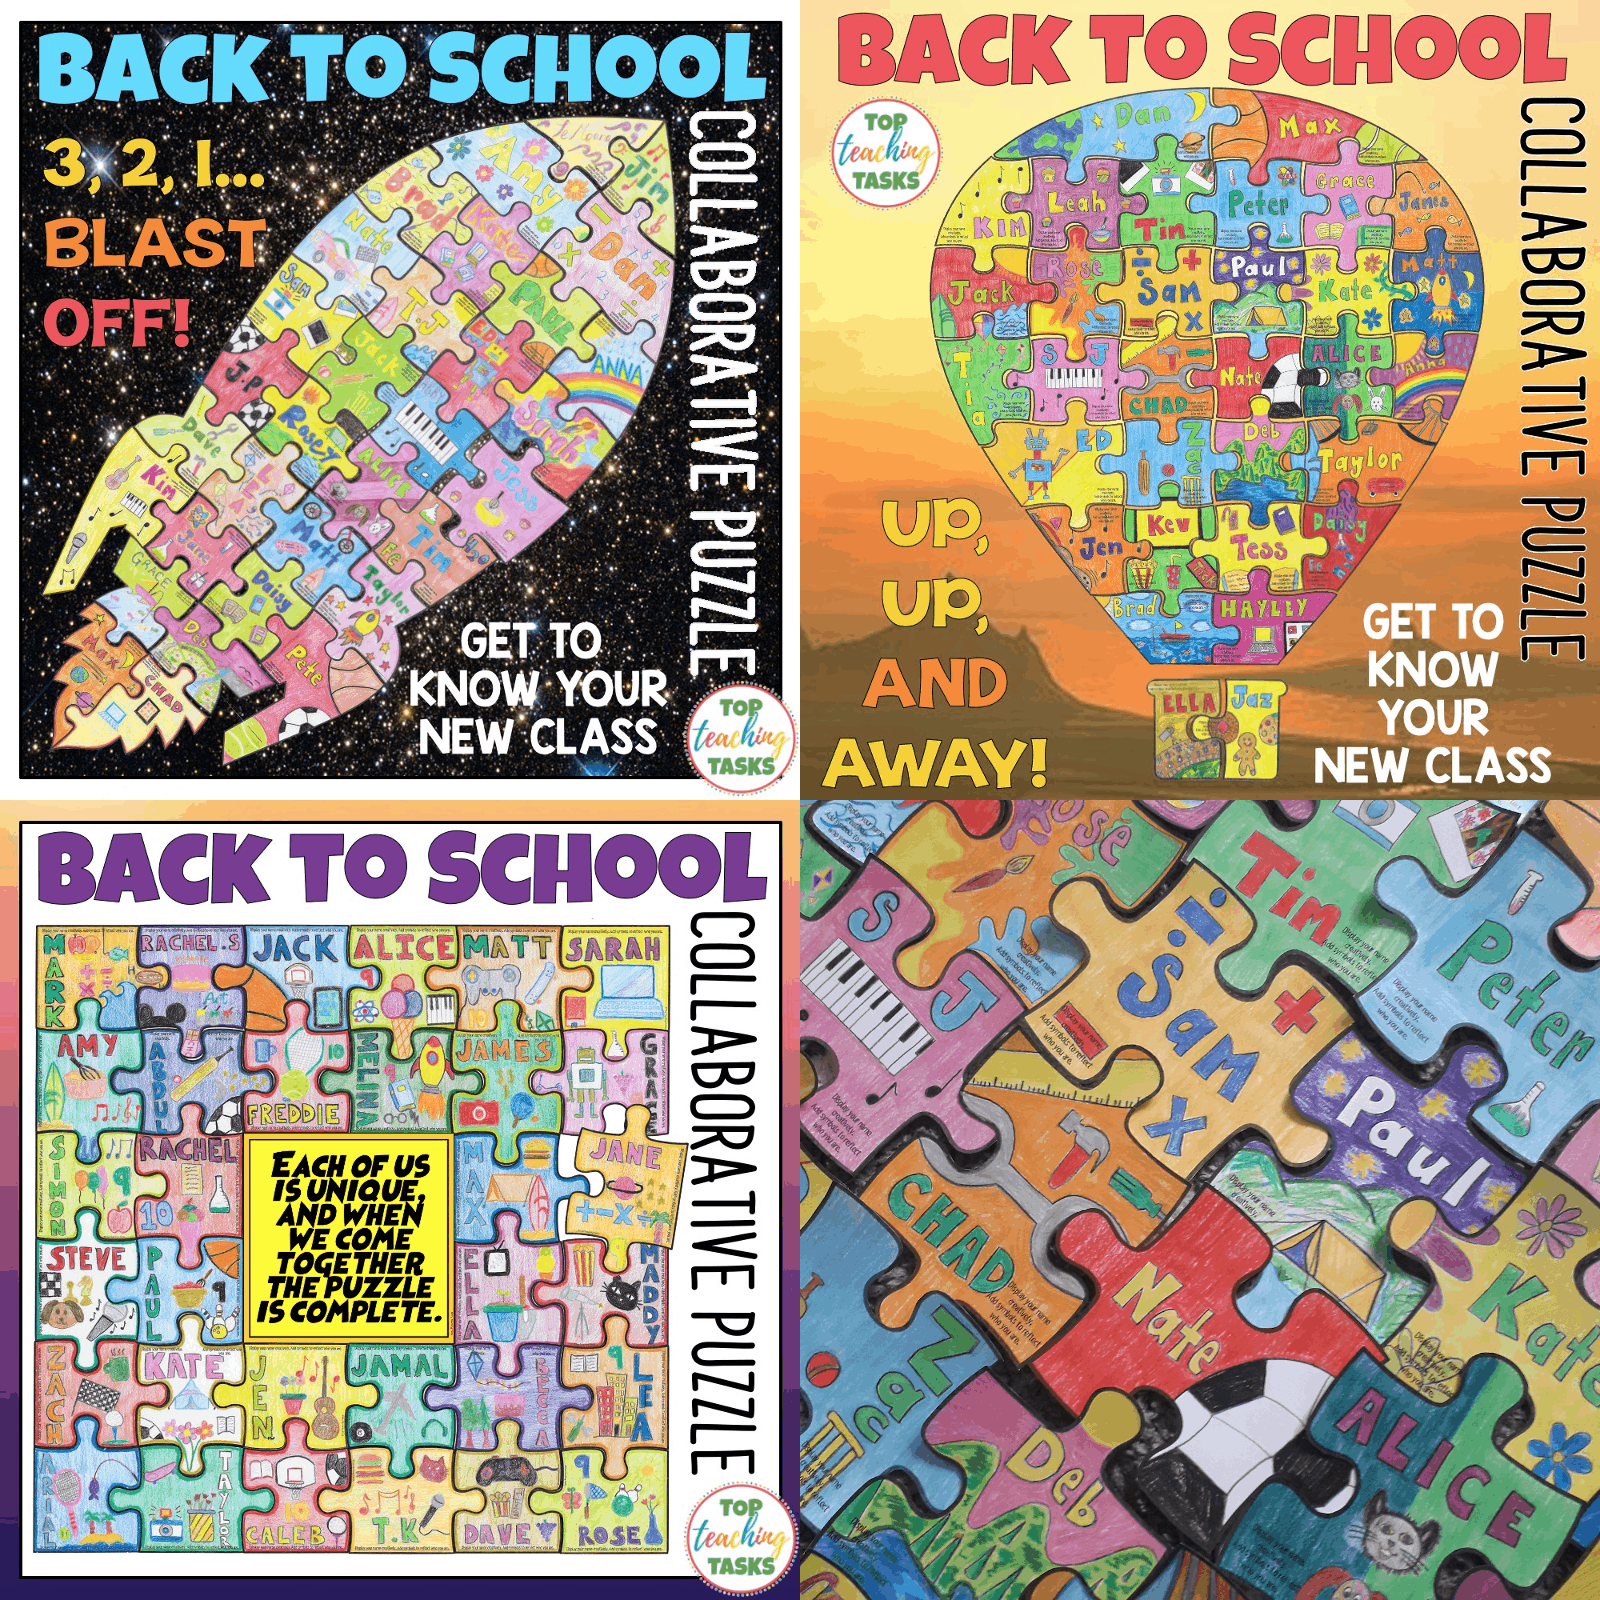 Back to School Collaborative Puzzle. I highly recommend our Getting To Know You Collaborative activity – great for the first few days of school. Studentscreate a collaborative jigsaw puzzle that serves as a visual introduction of each child while also reinforcing the ideas of teamwork and classroom unity.Display the amazing puzzle to wow your school community.